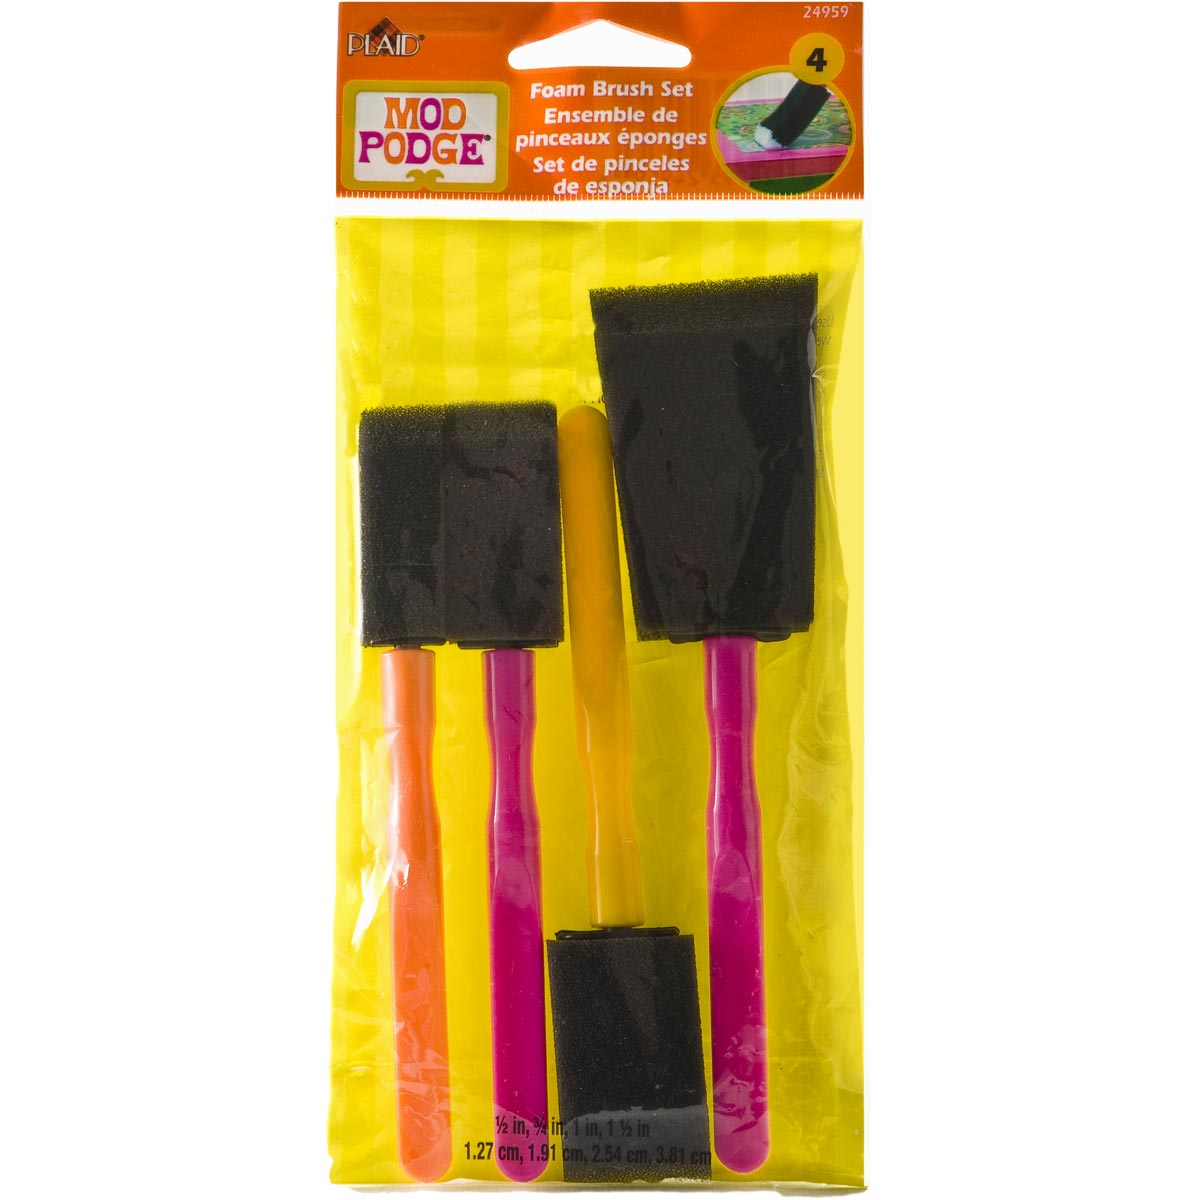 Mod Podge ® Foam Brush Set, 4 pc. - 24959